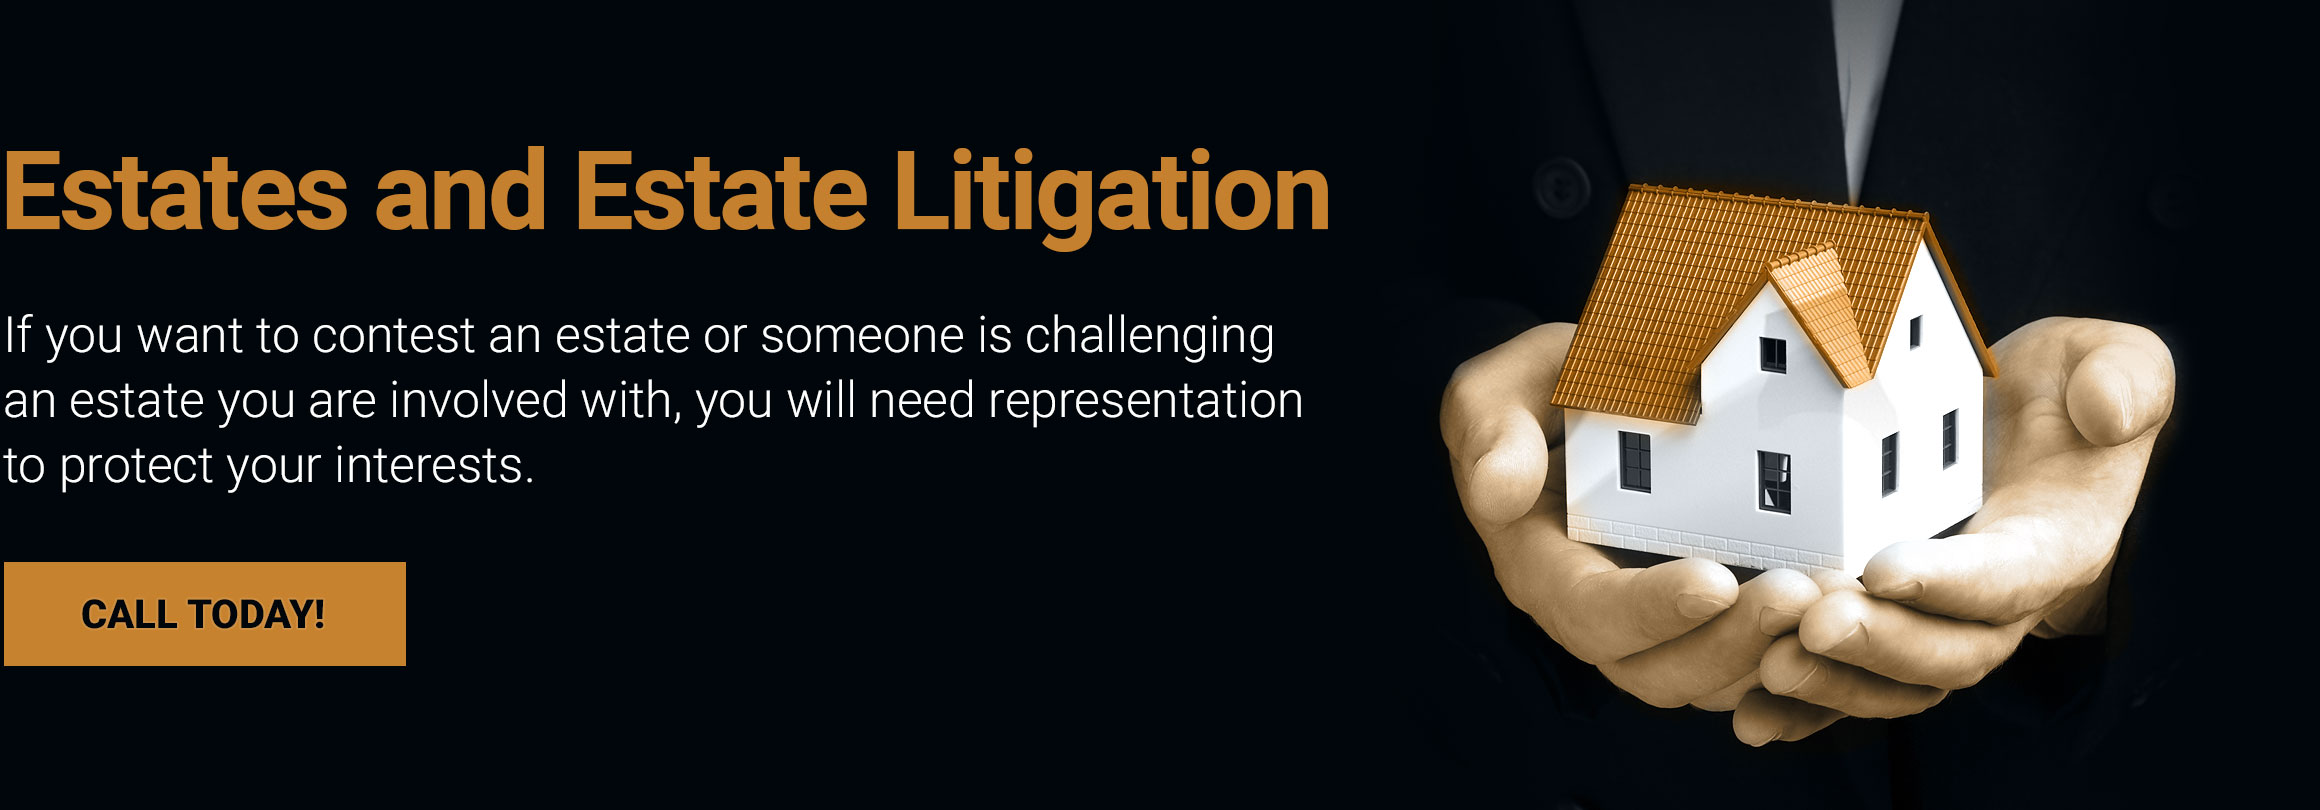 Estates and Estate Litigation